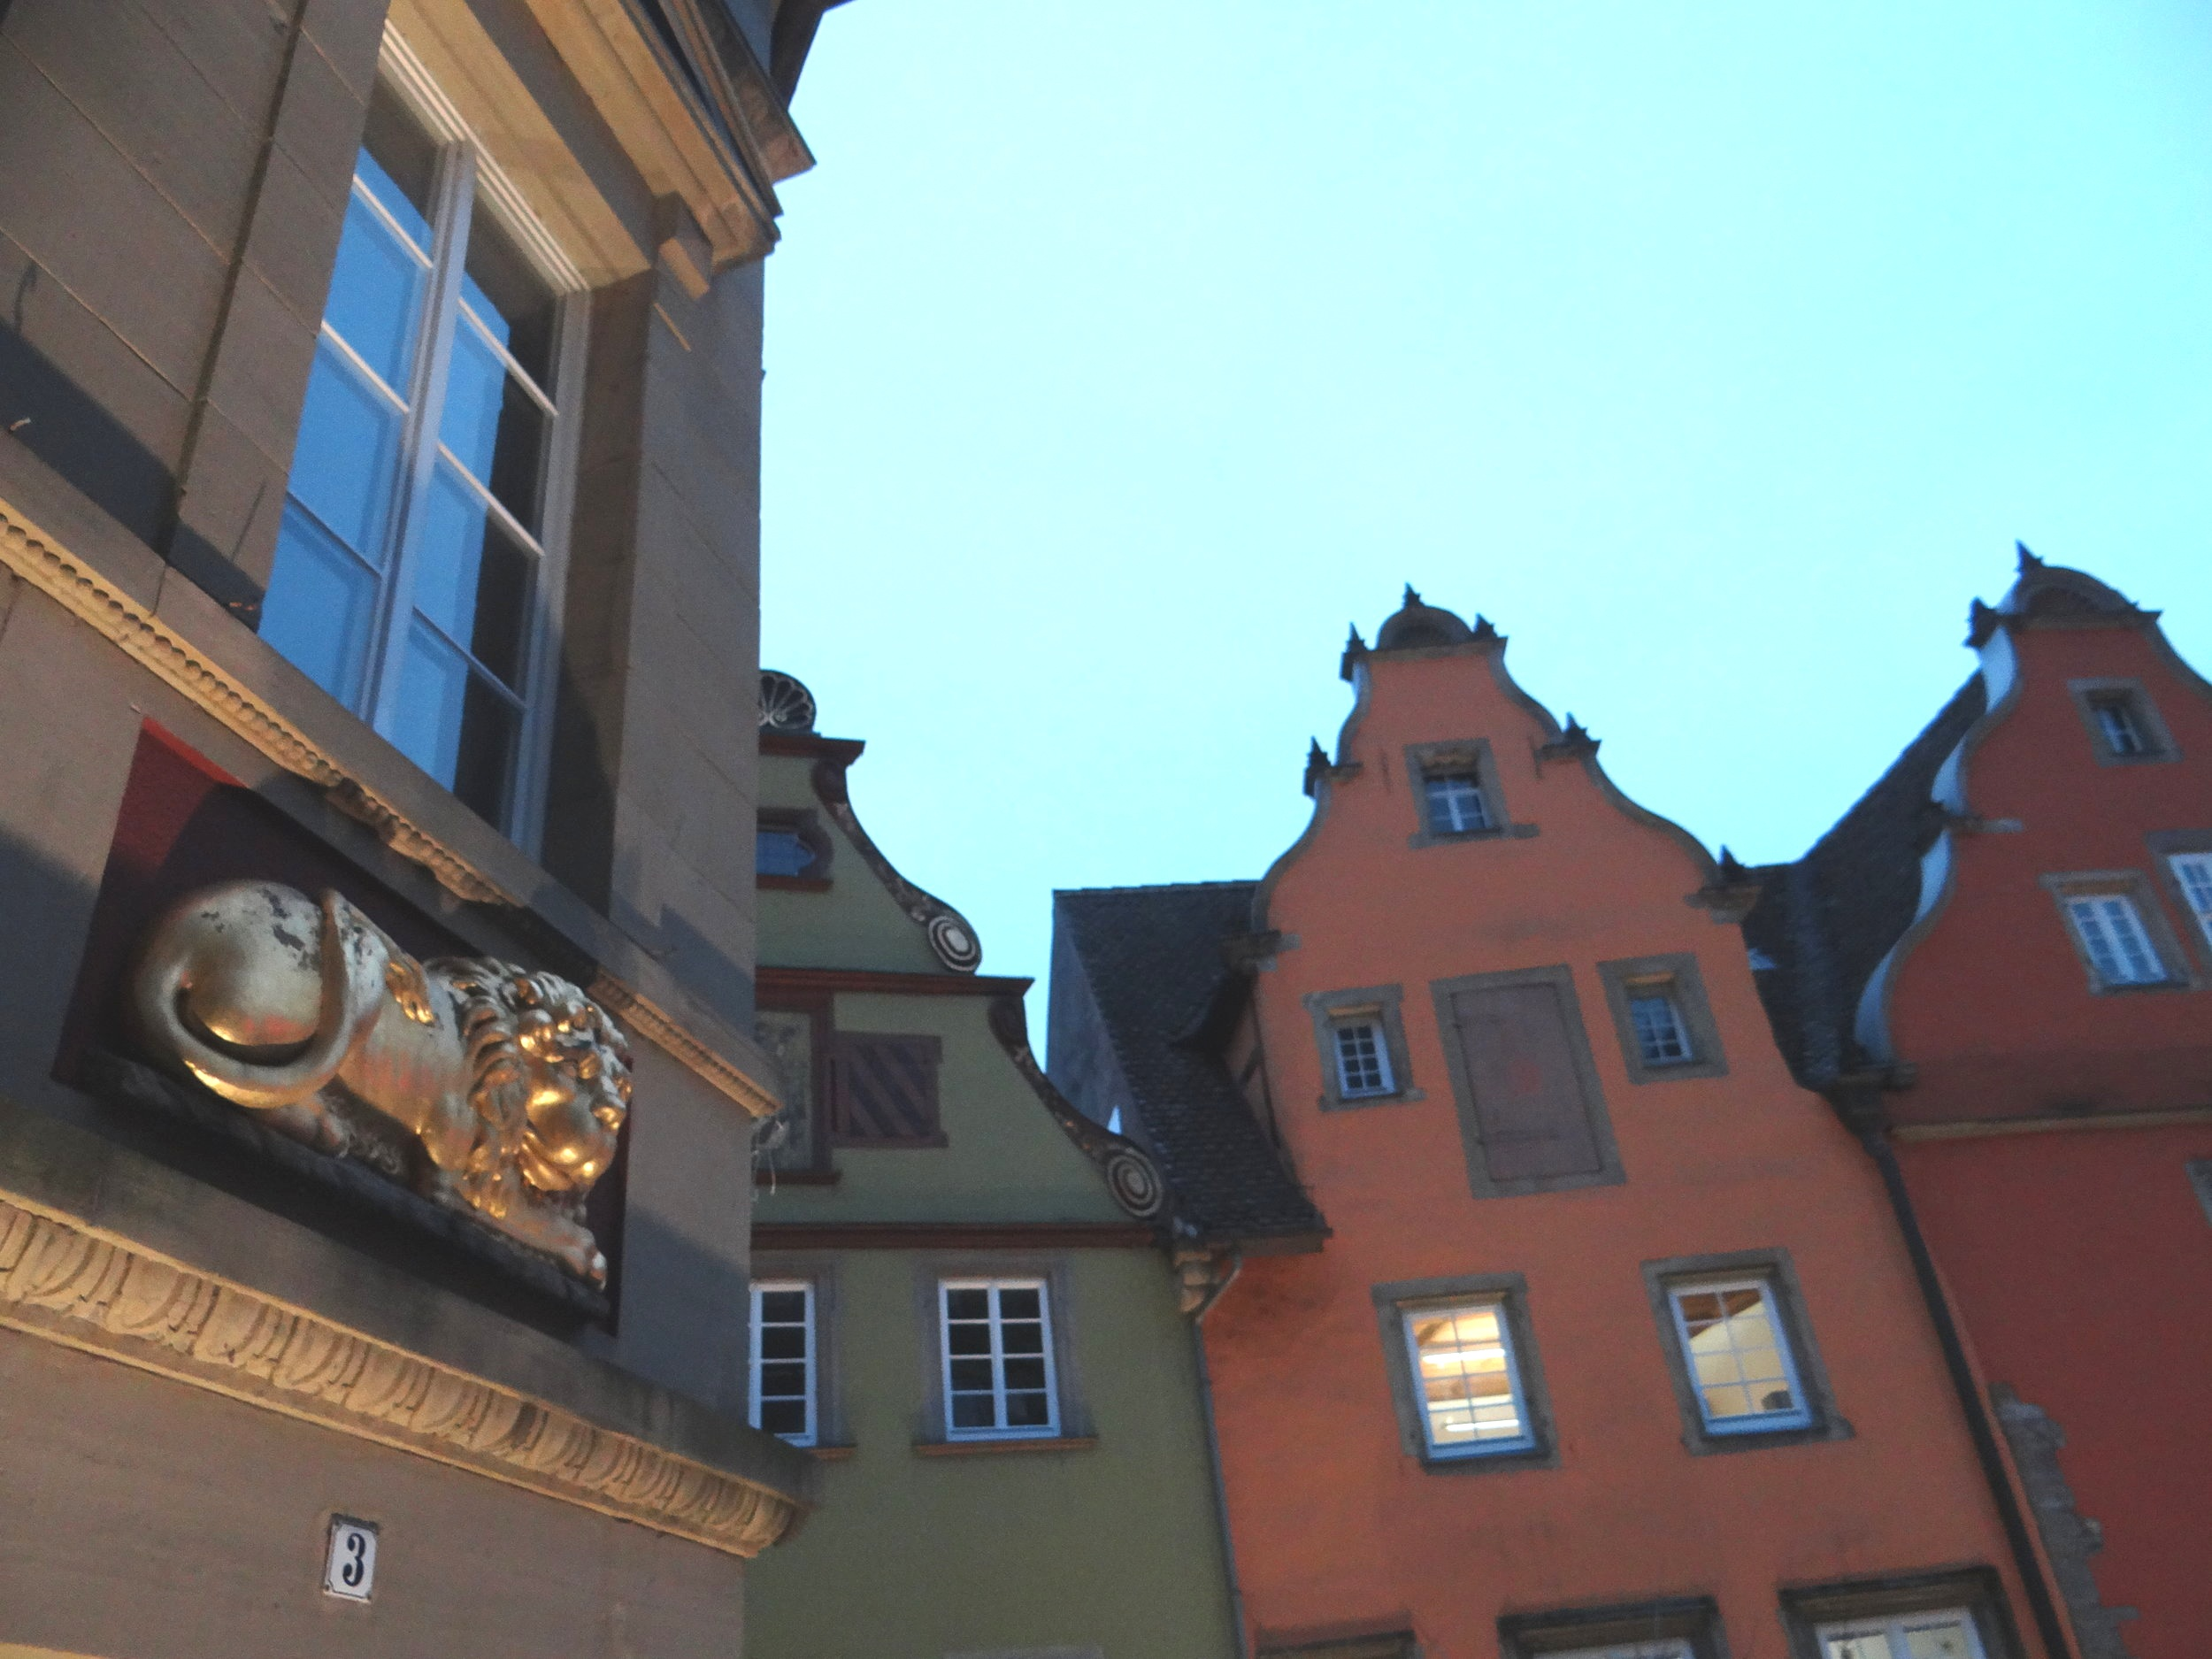 There are quite a few remarkable houses around the Marktplatz and, as you can see here, not all of them are timber-framed!